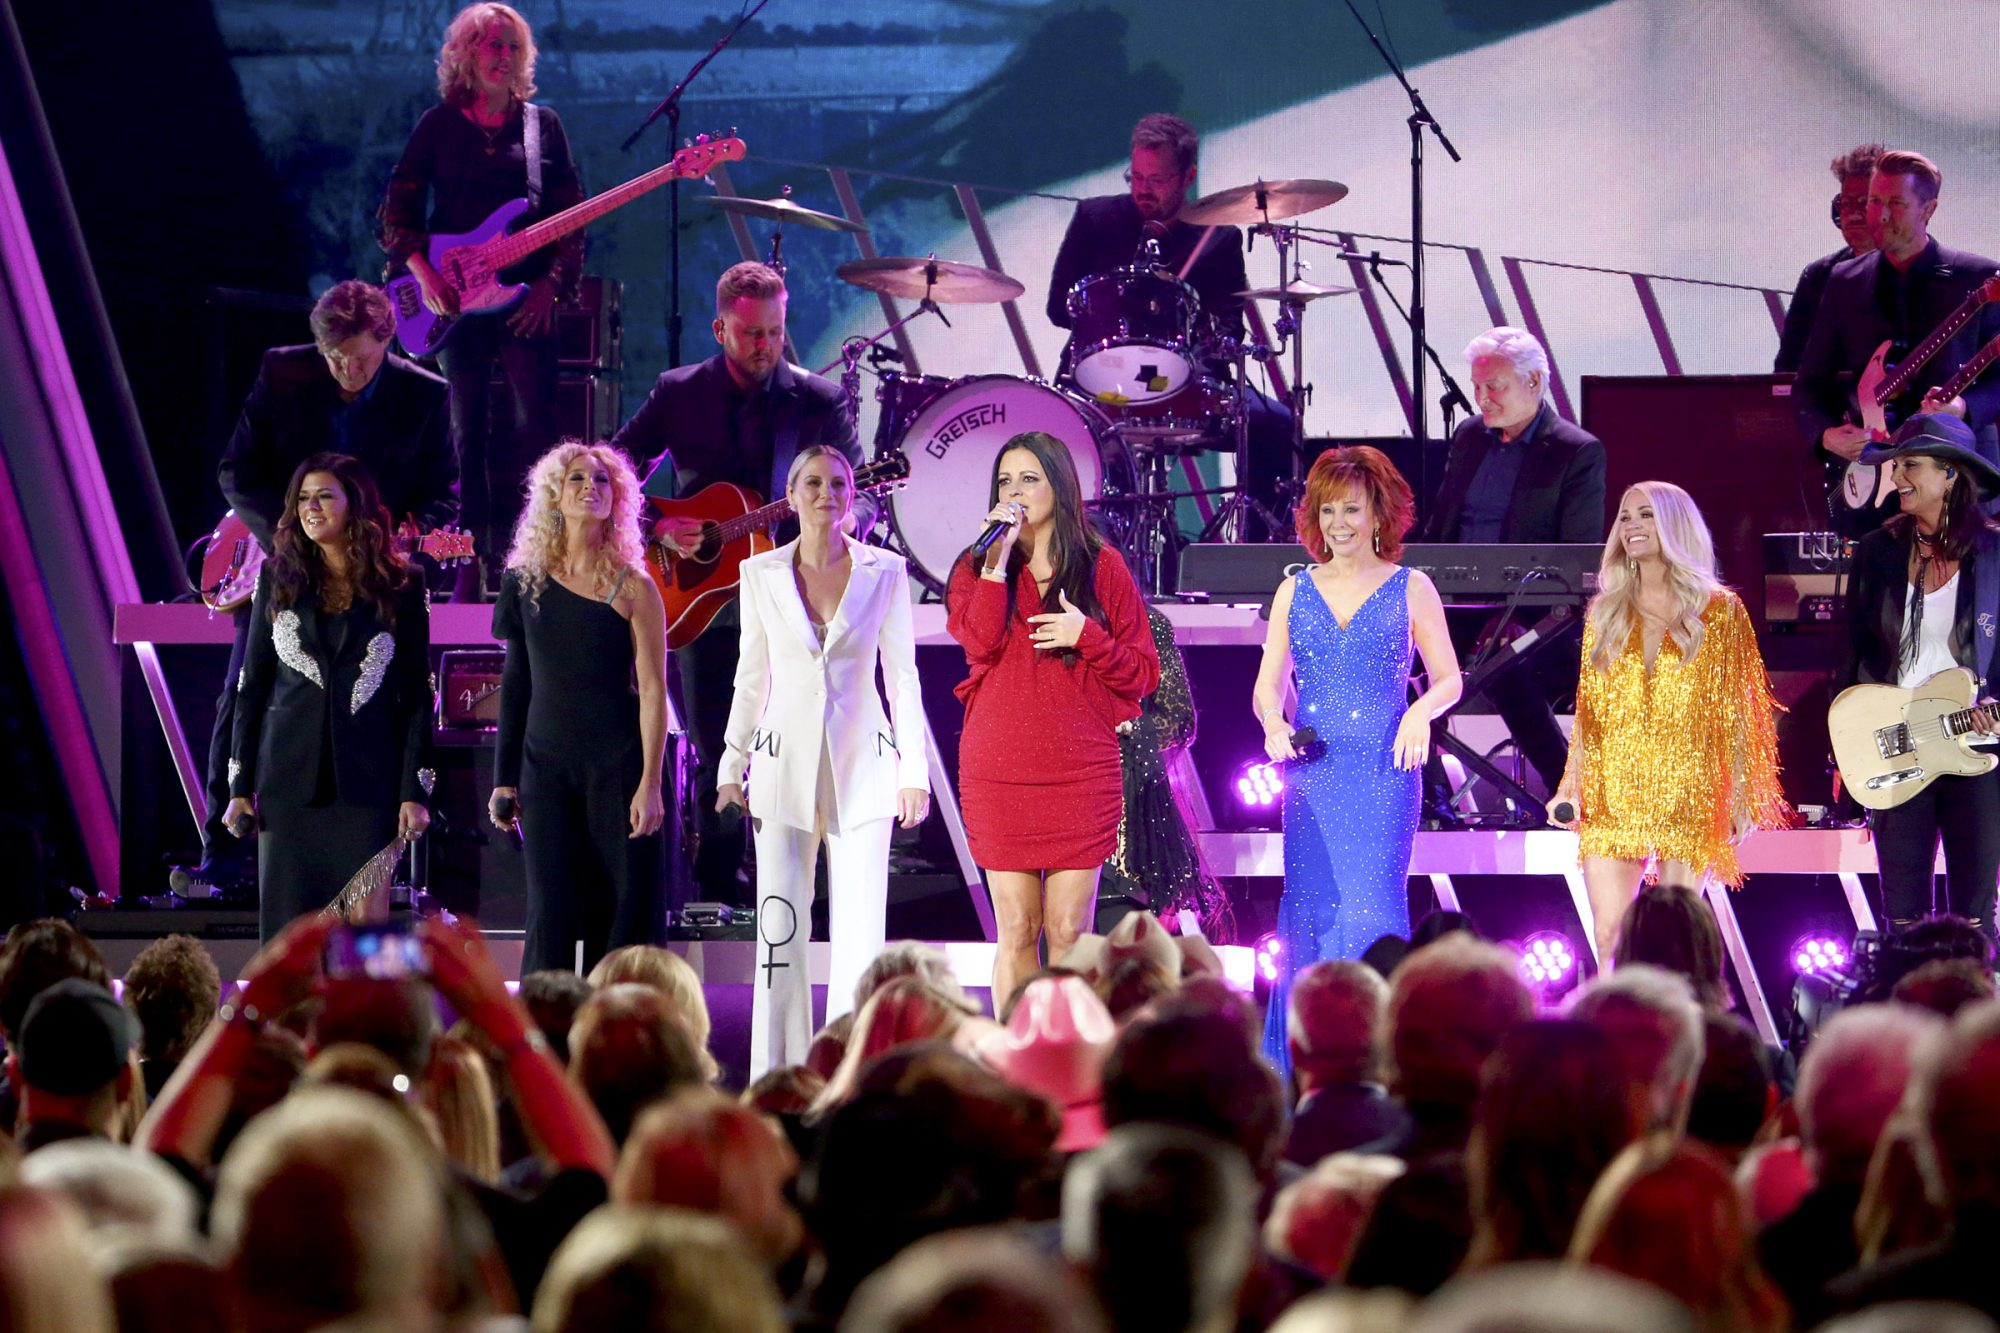 Karen Fairchild and Kimberly Schlapman of Little Big Town, Jennifer Nettles, Sara Evans, Reba McEntire and Carrie Underwood